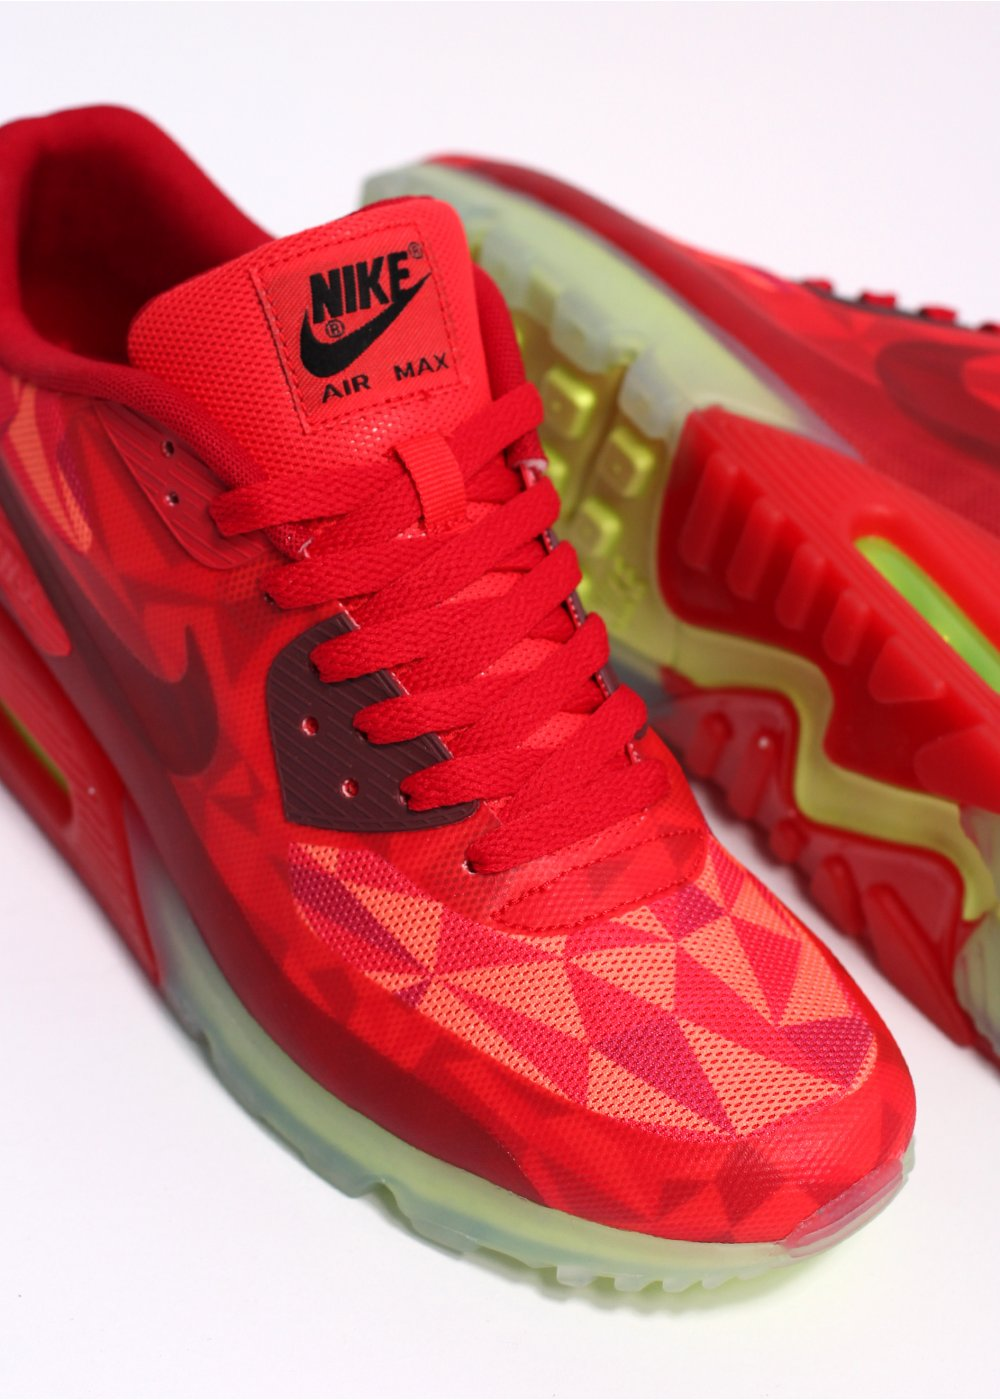 new concept 27ec4 30893 ... Air Max 90 quotIce Packquot Trainers - Gym Red University Red .